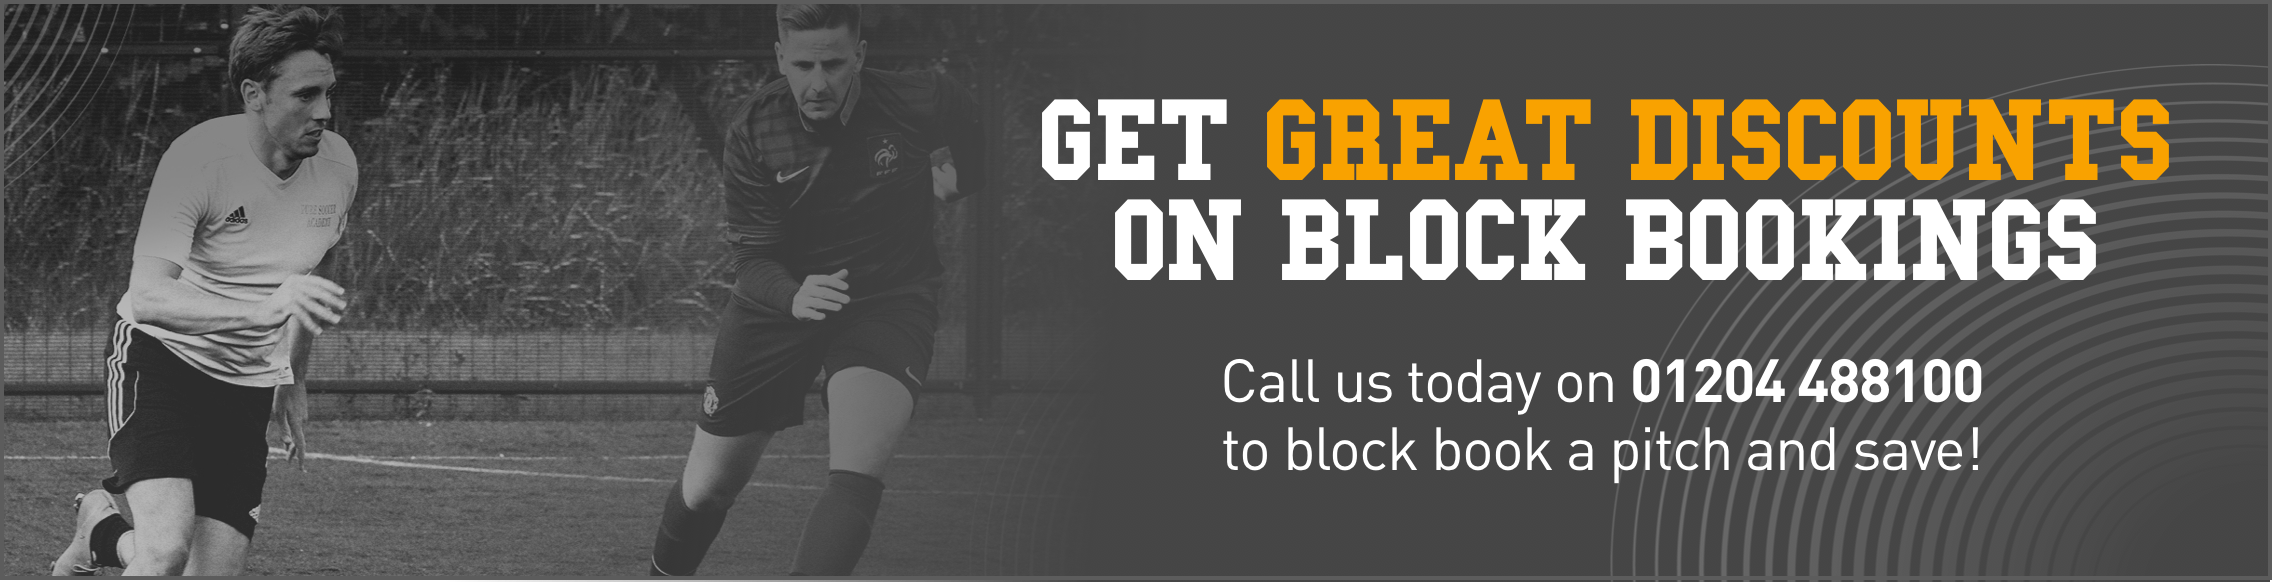 Get great discounts on block booking